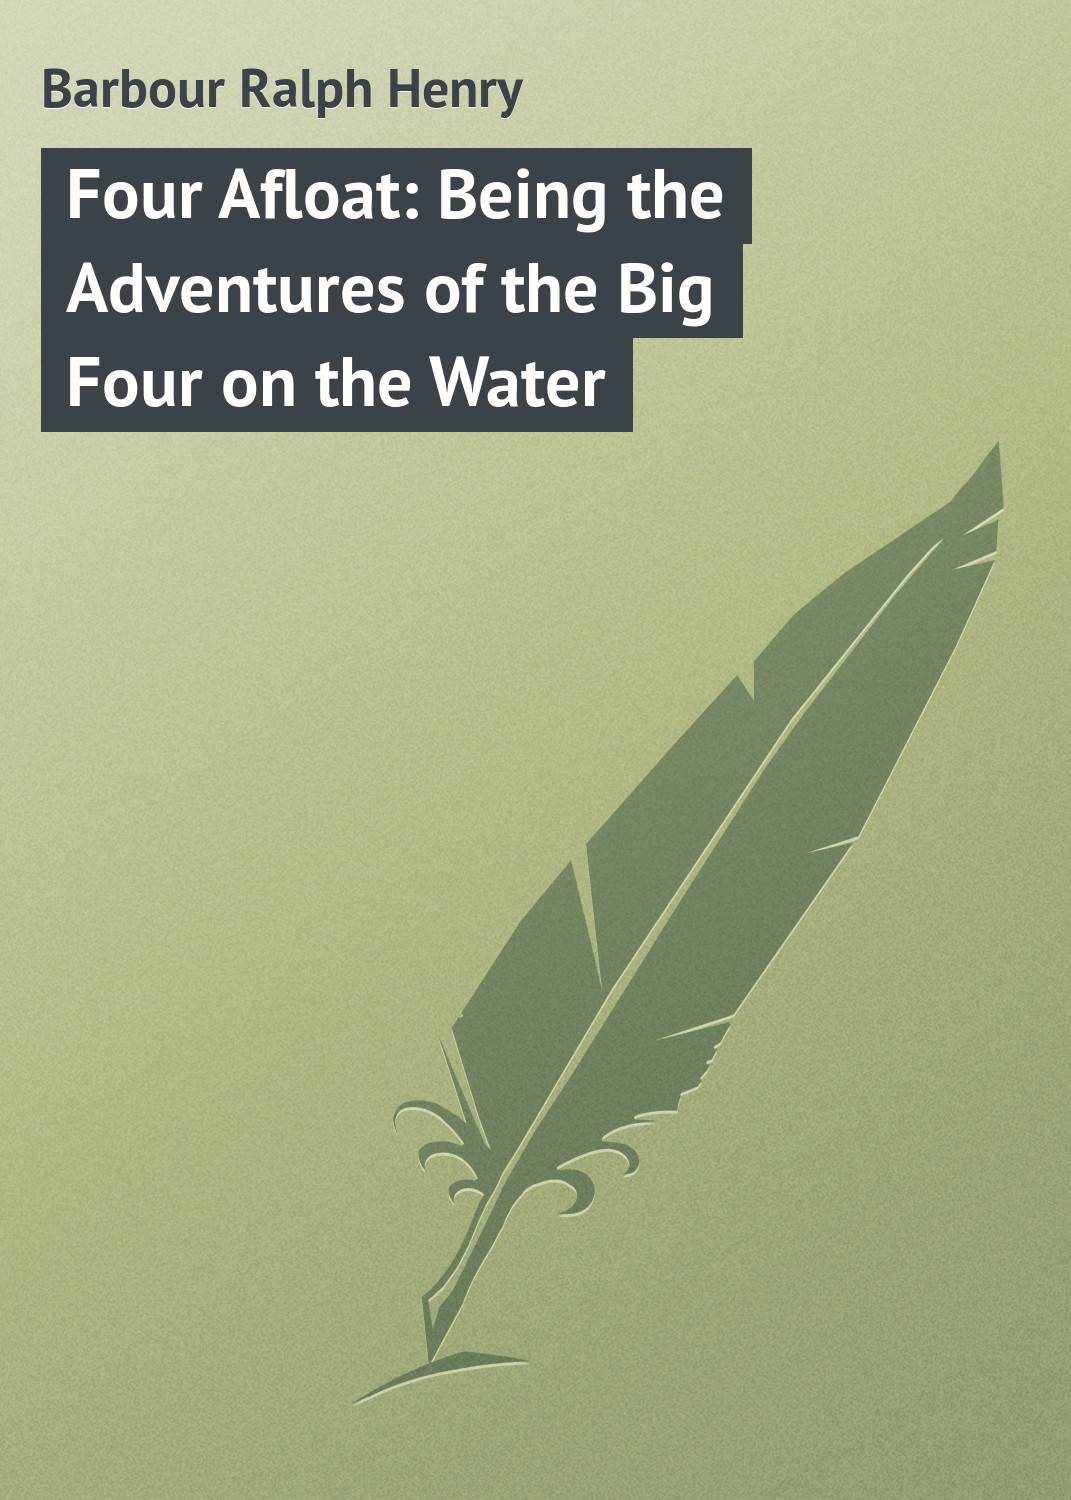 Four Afloat: Being the Adventures of the Big Four on the Water